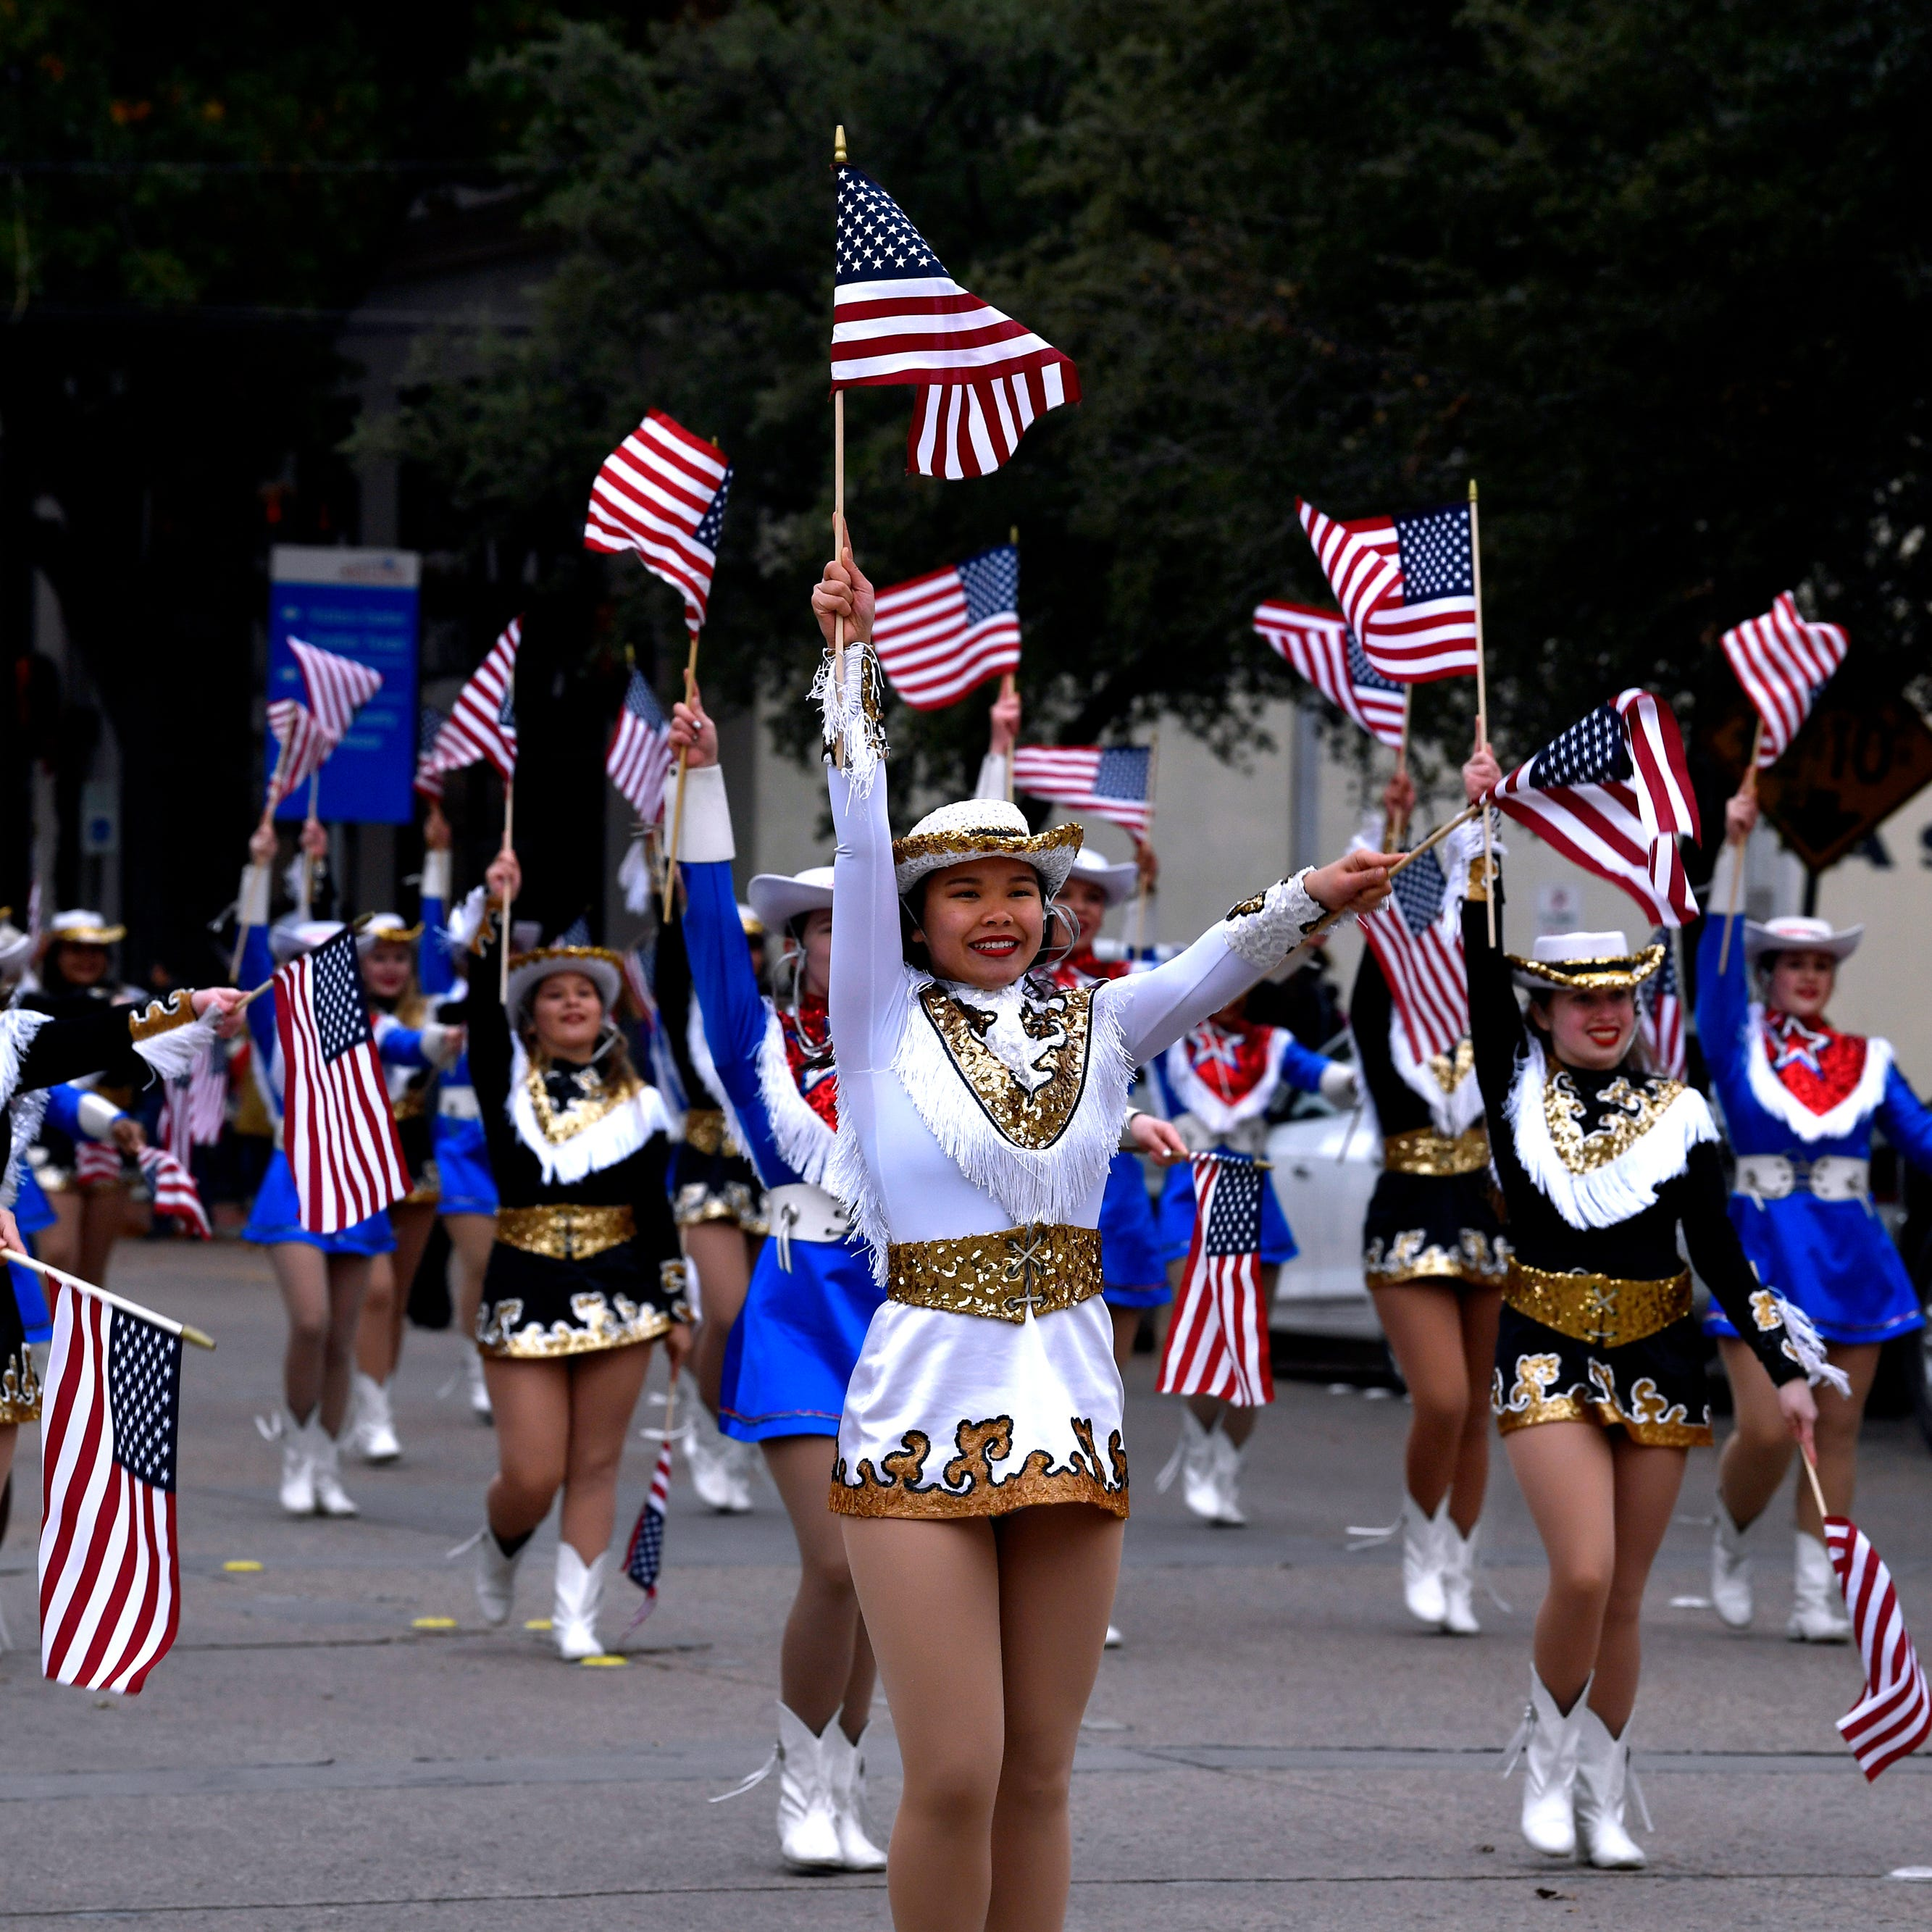 Patriotism rules over chilly Veterans Day parade in Abilene